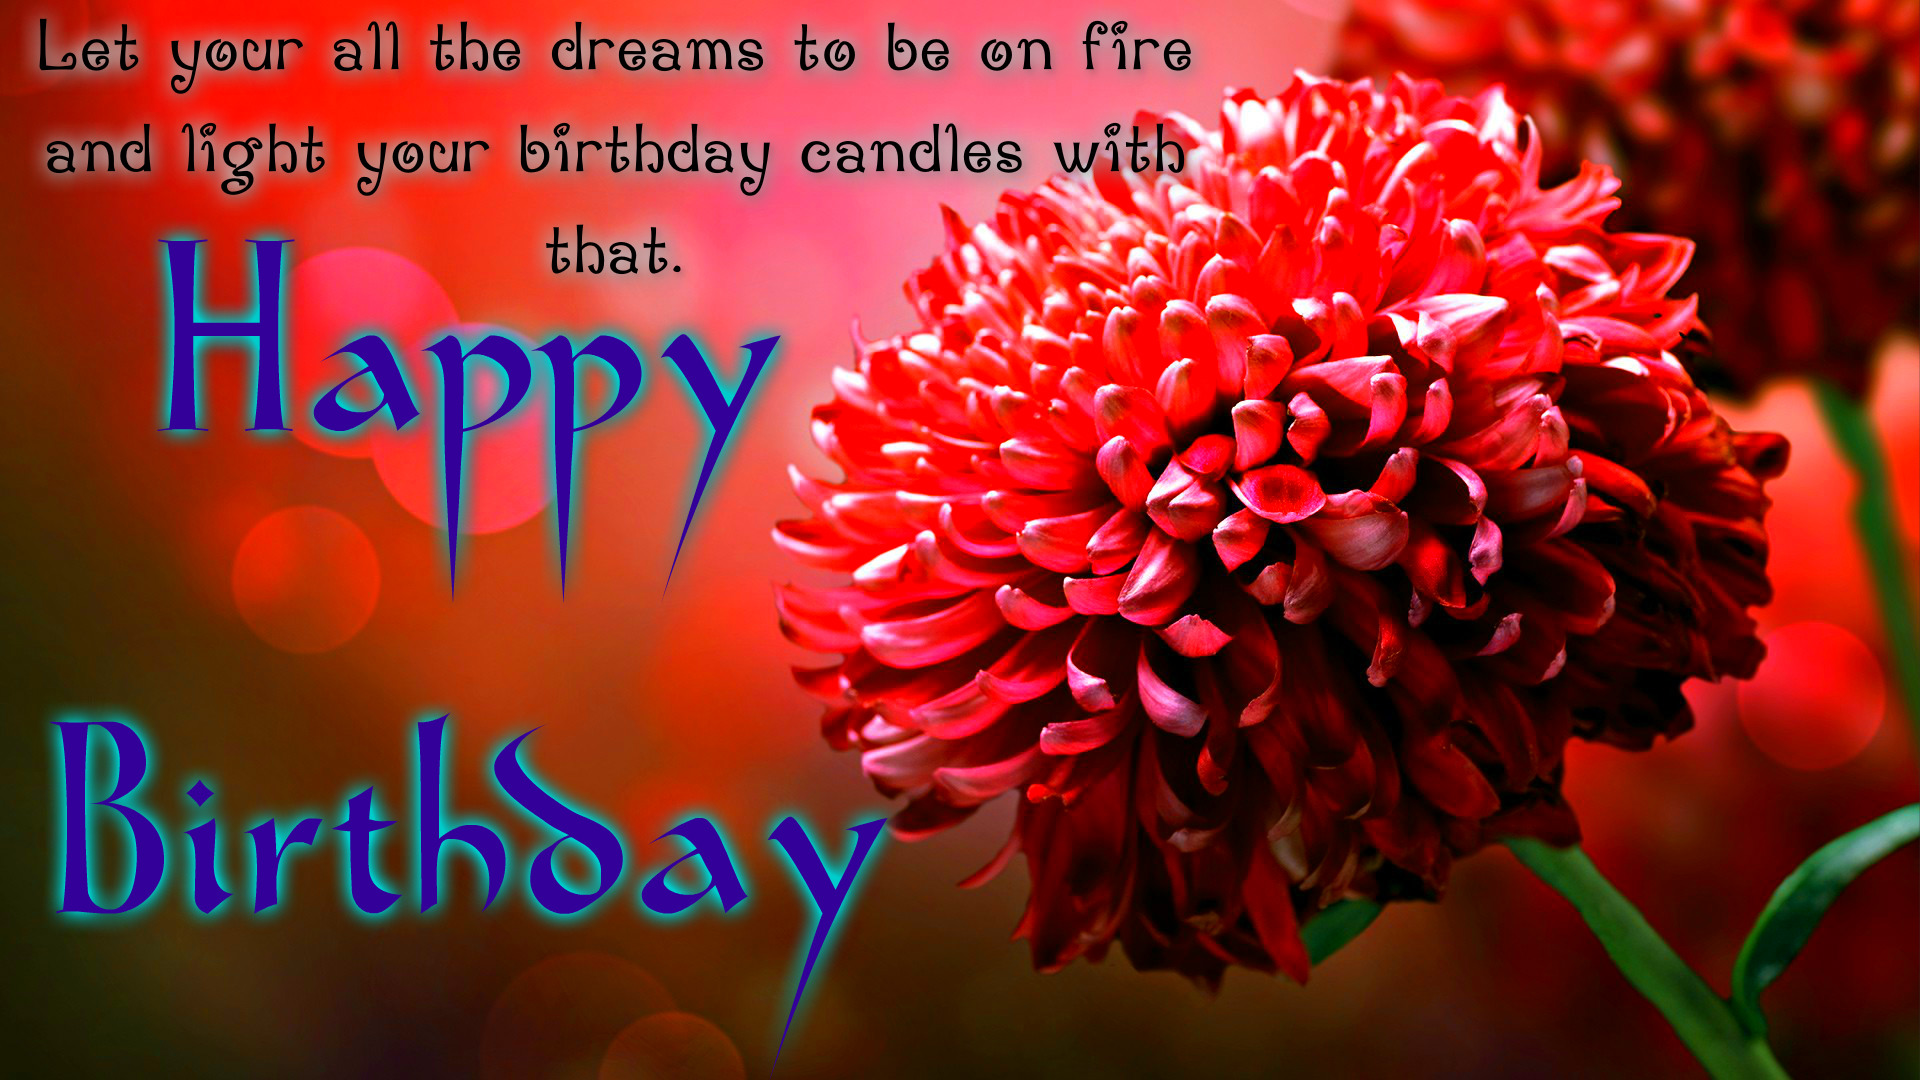 birthday wallpaper with quotes ; Happy-Birthday-Flowers-2